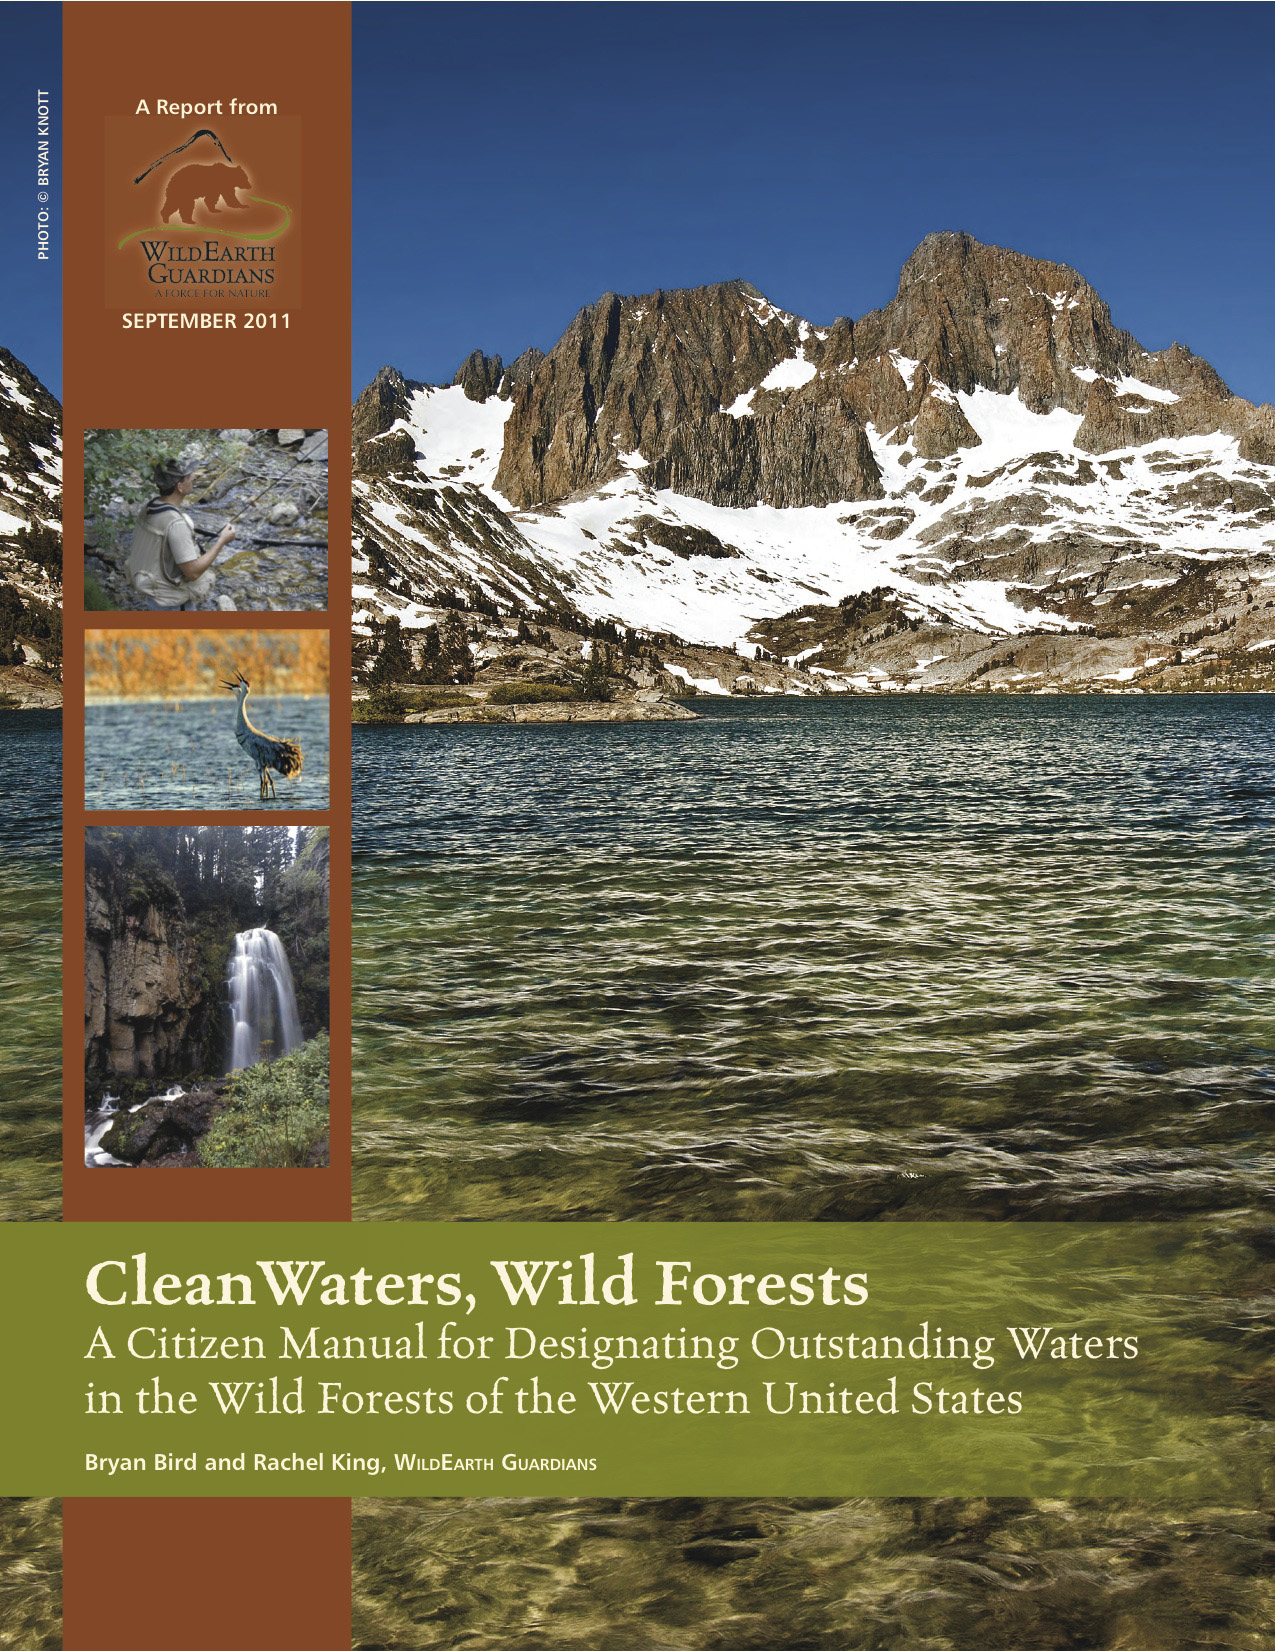 Clean Water, Wild Forests Report